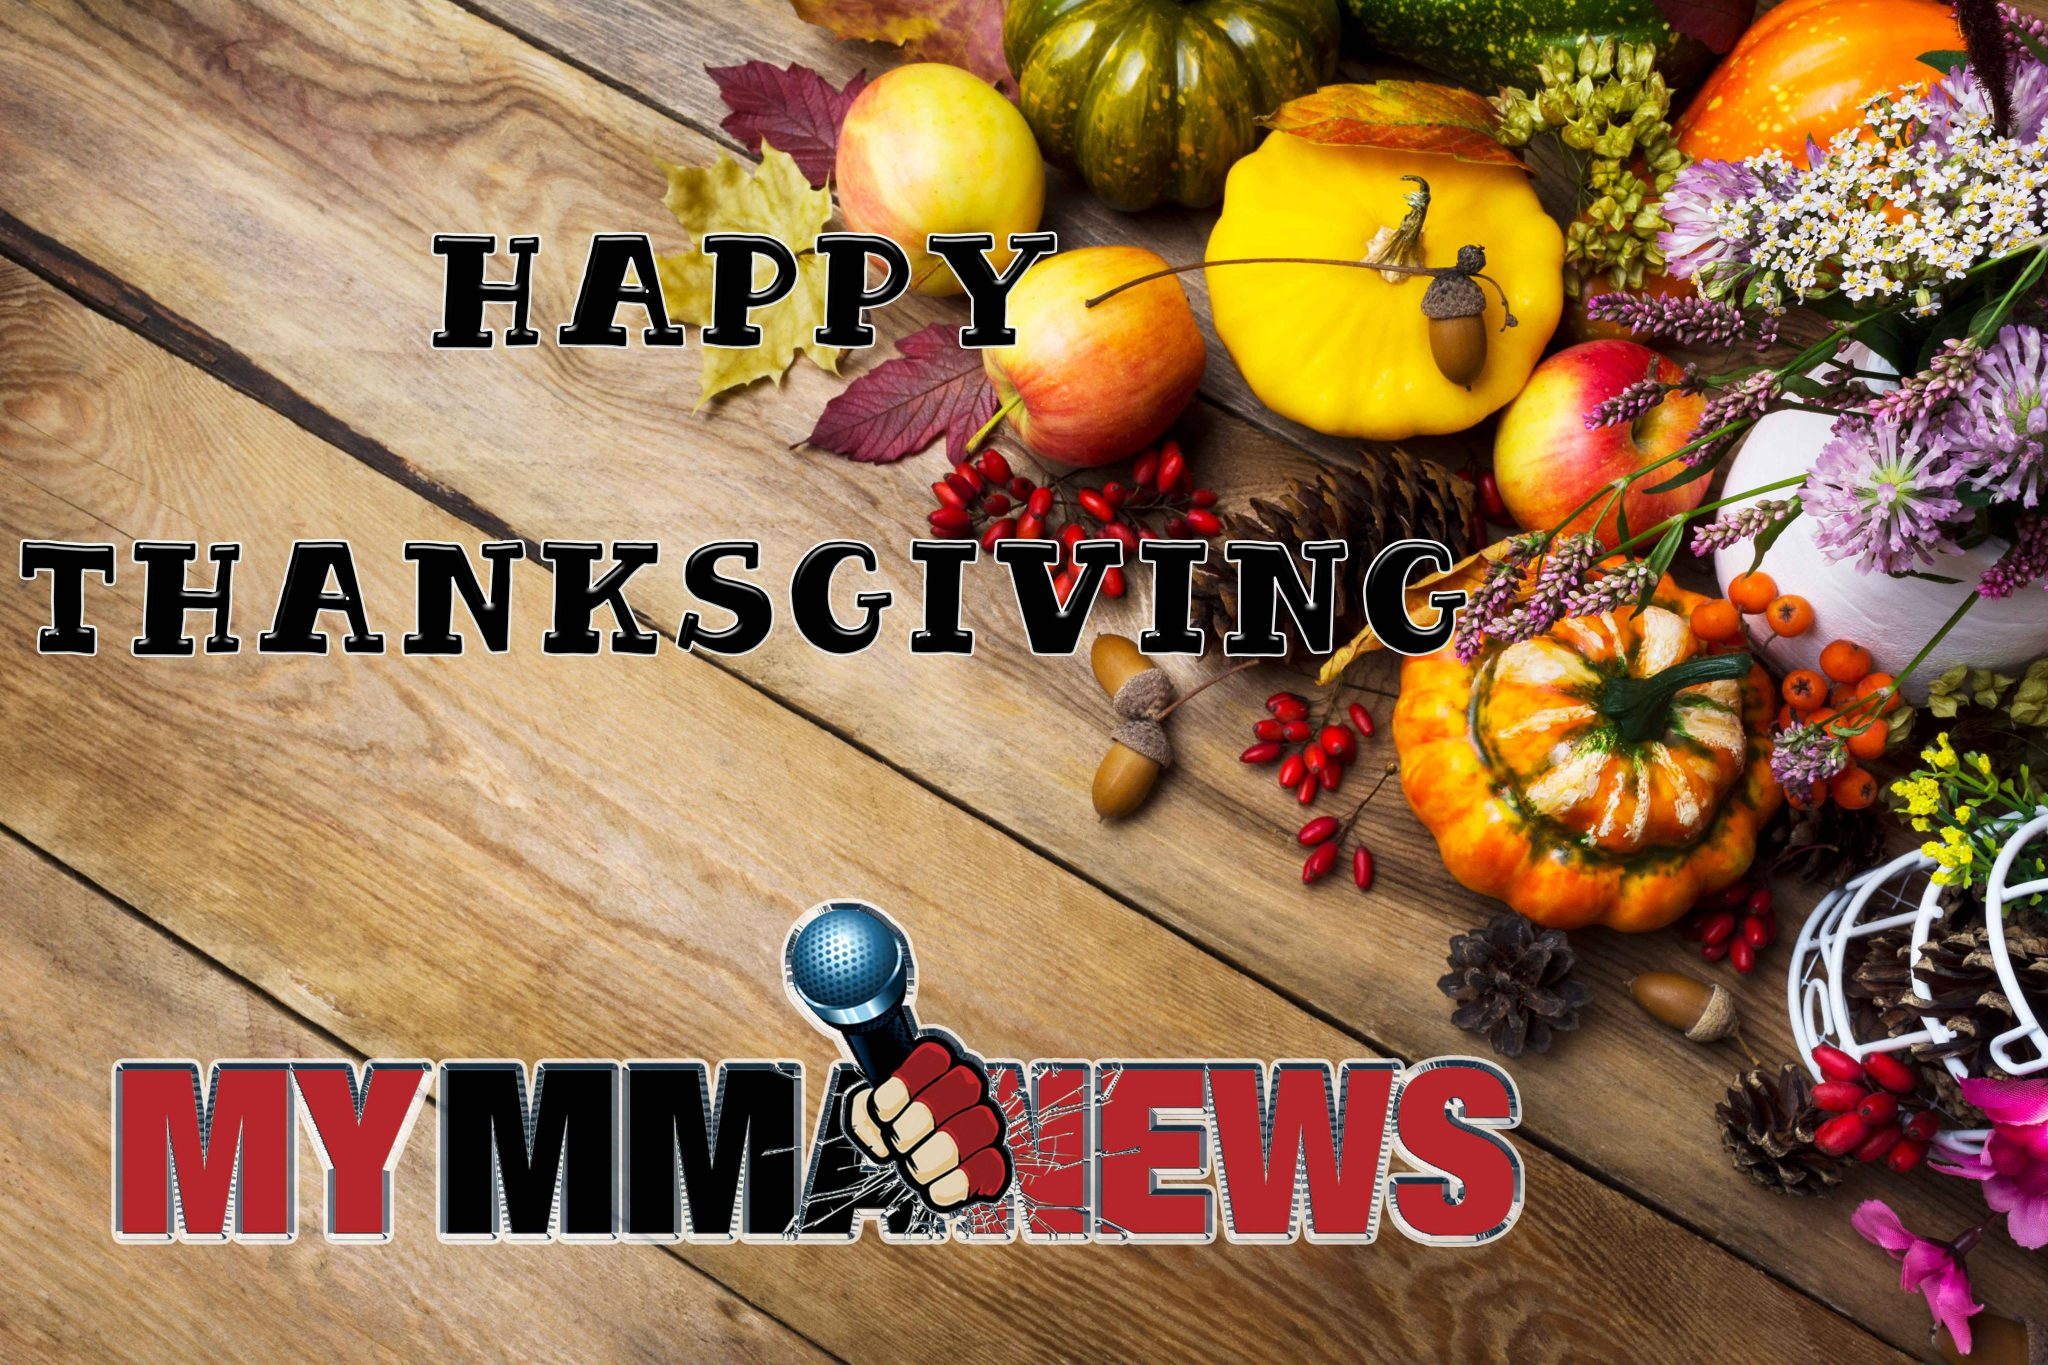 Happy Thanksgiving, Turkey Day, MyMMANews